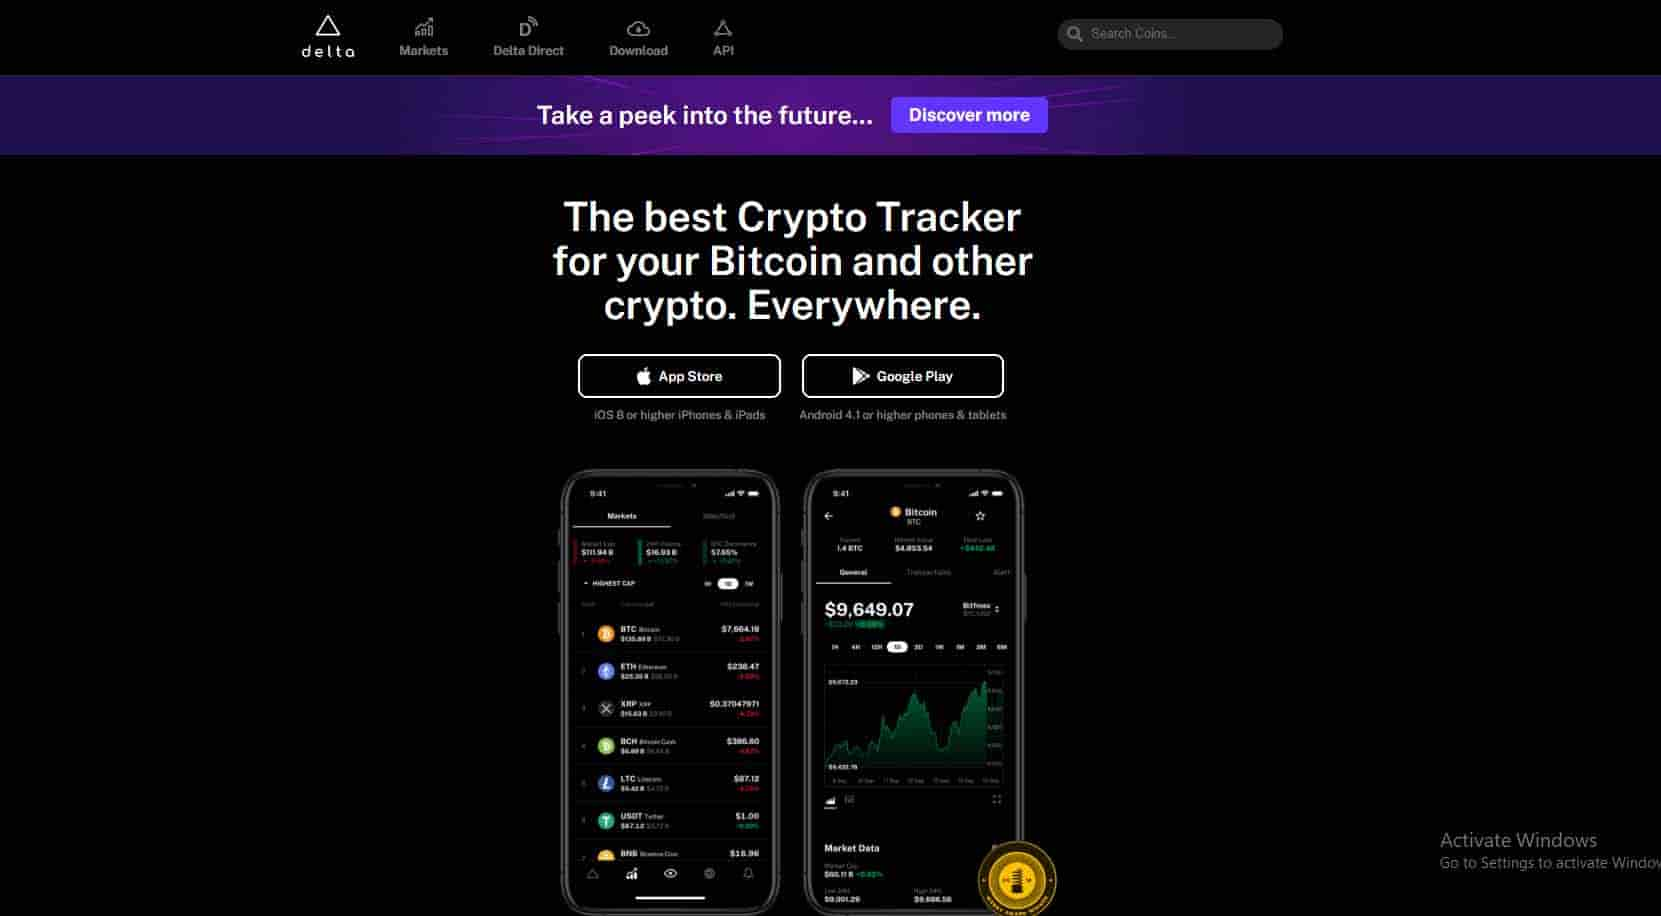 Delta Best Crypto Tracker